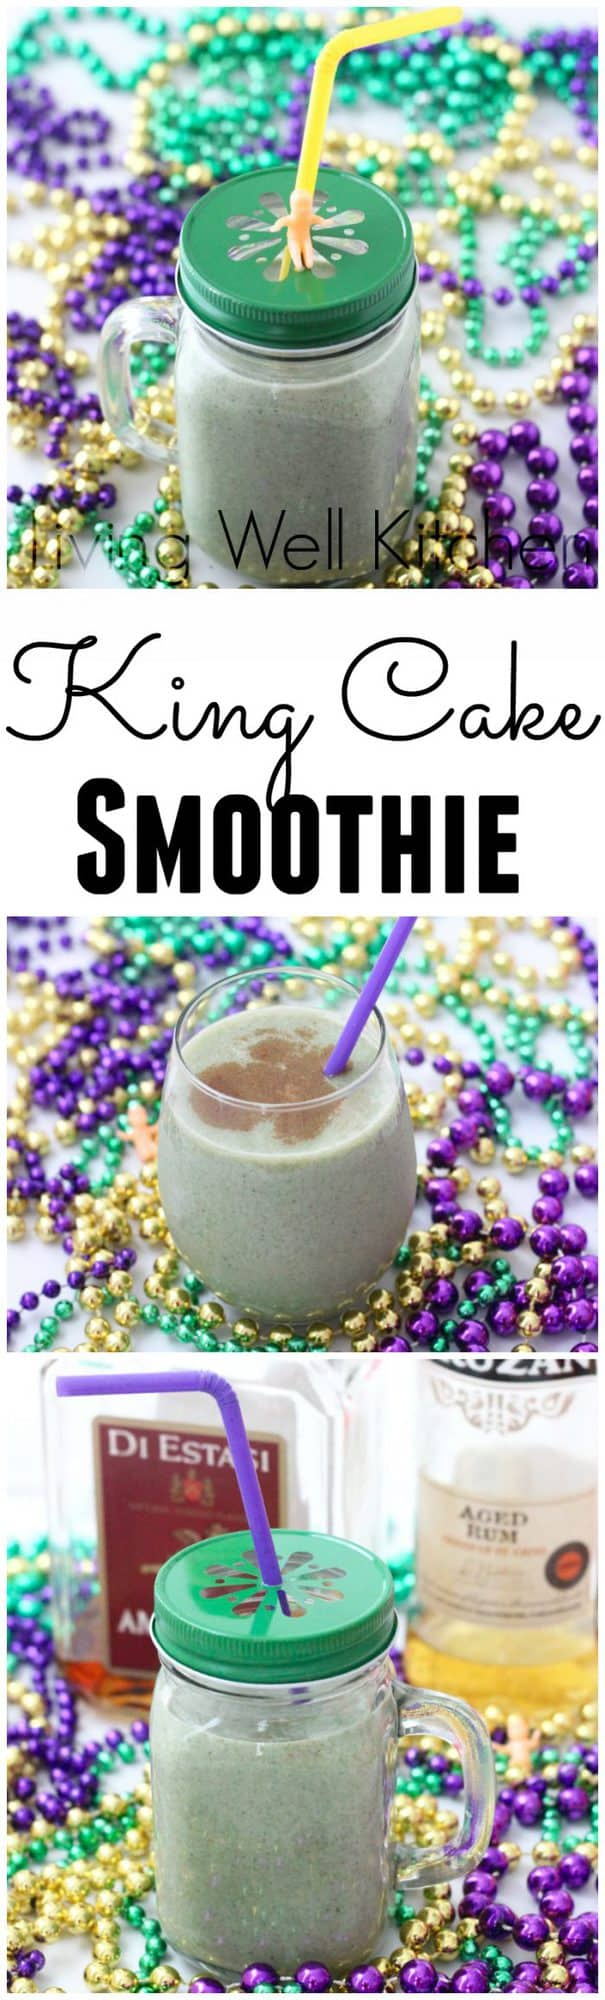 This spiked king cake smoothie is a tasty, nourishing, and filling concoction that'll keep you marching the parade route all day long from Living Well Kitchen @memeinge